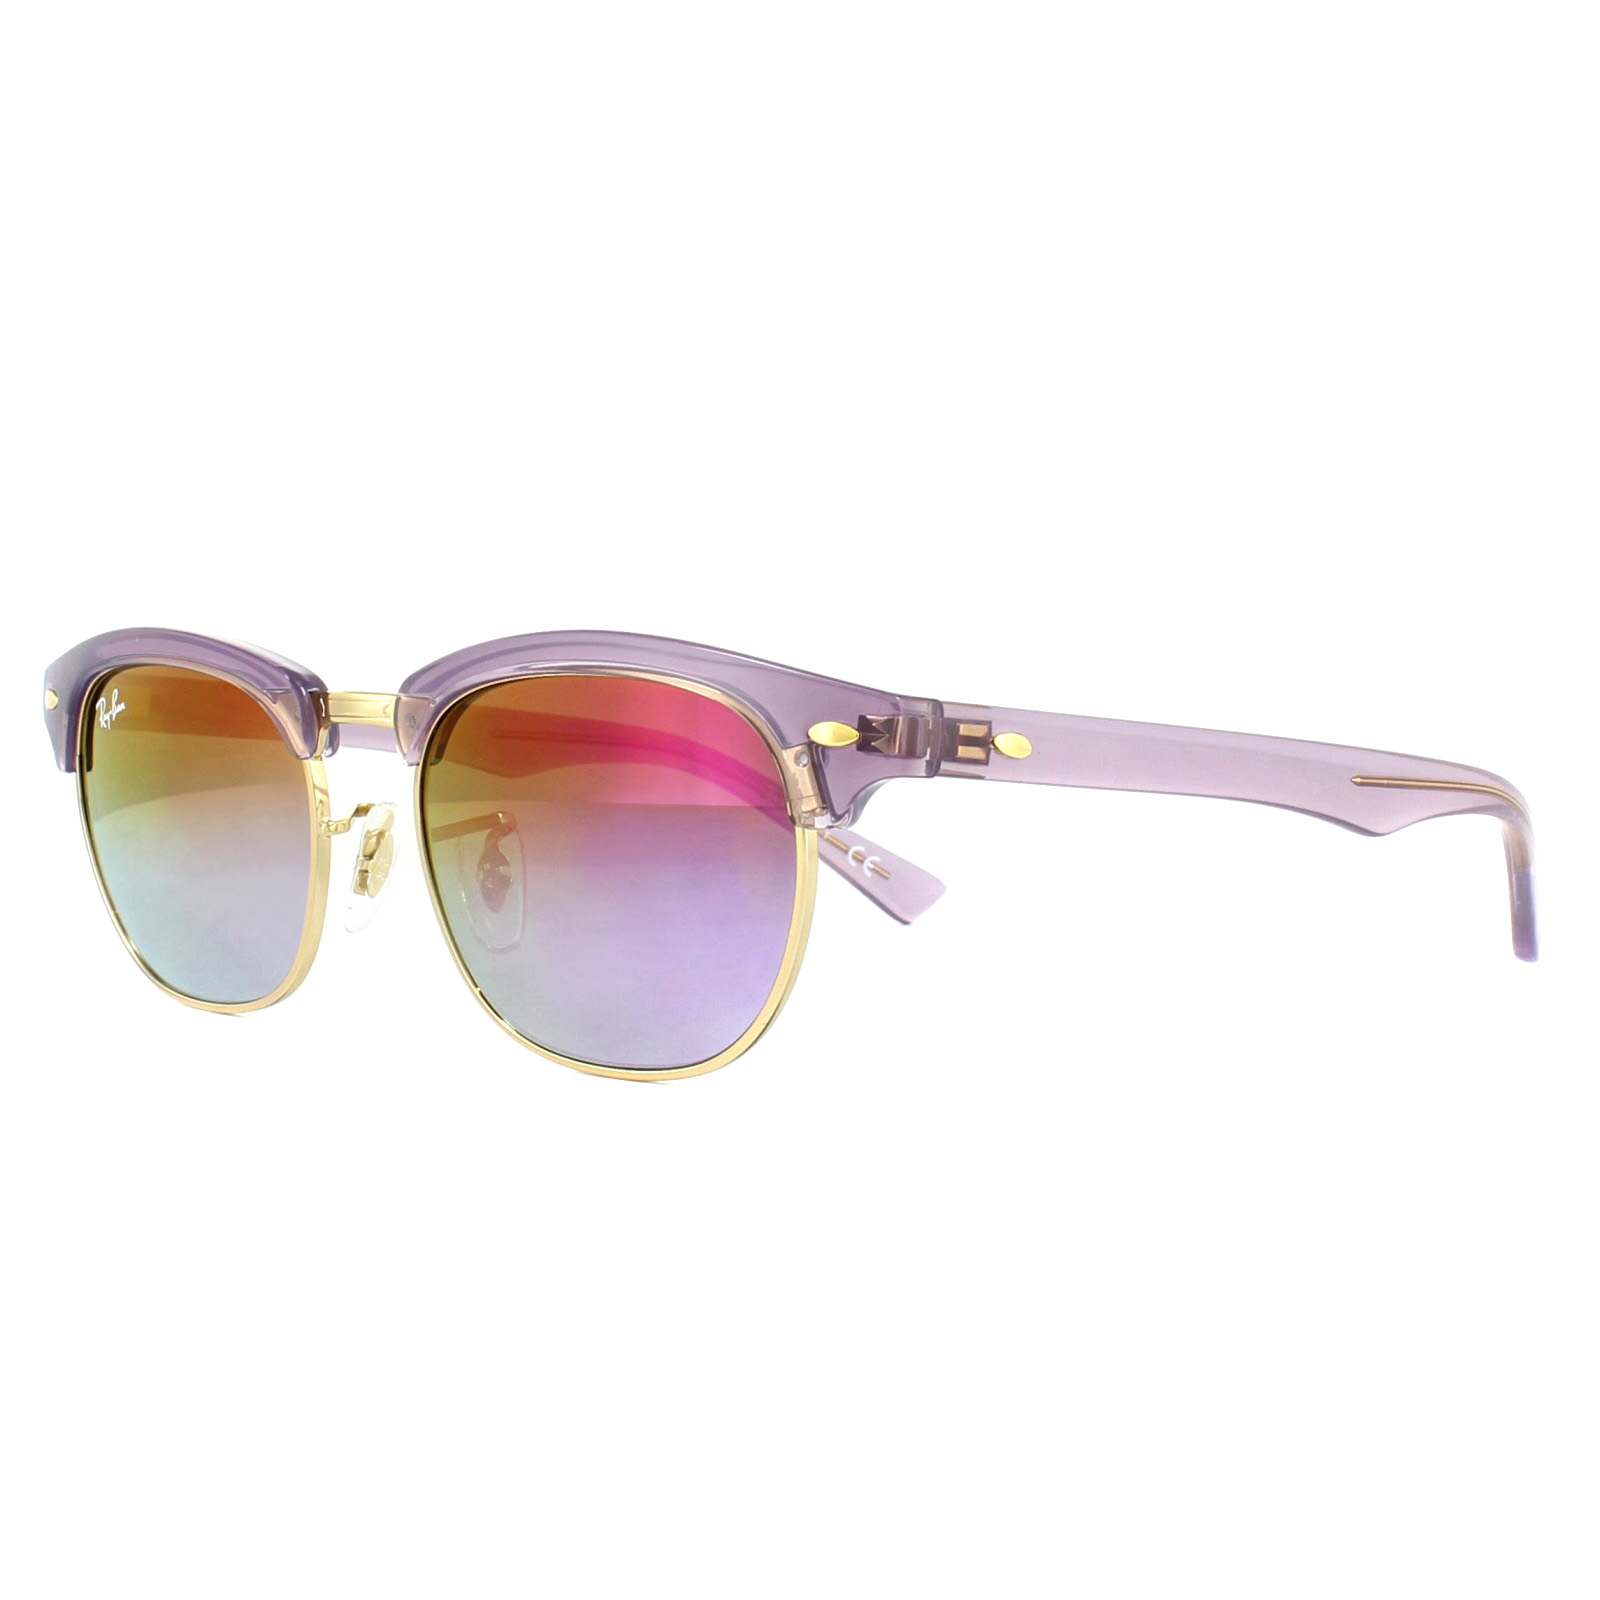 ef03def3320 Sentinel Ray-Ban Junior Sunglasses 9050S 7036A9 Violet Violet Gradient  Mirror 47mm